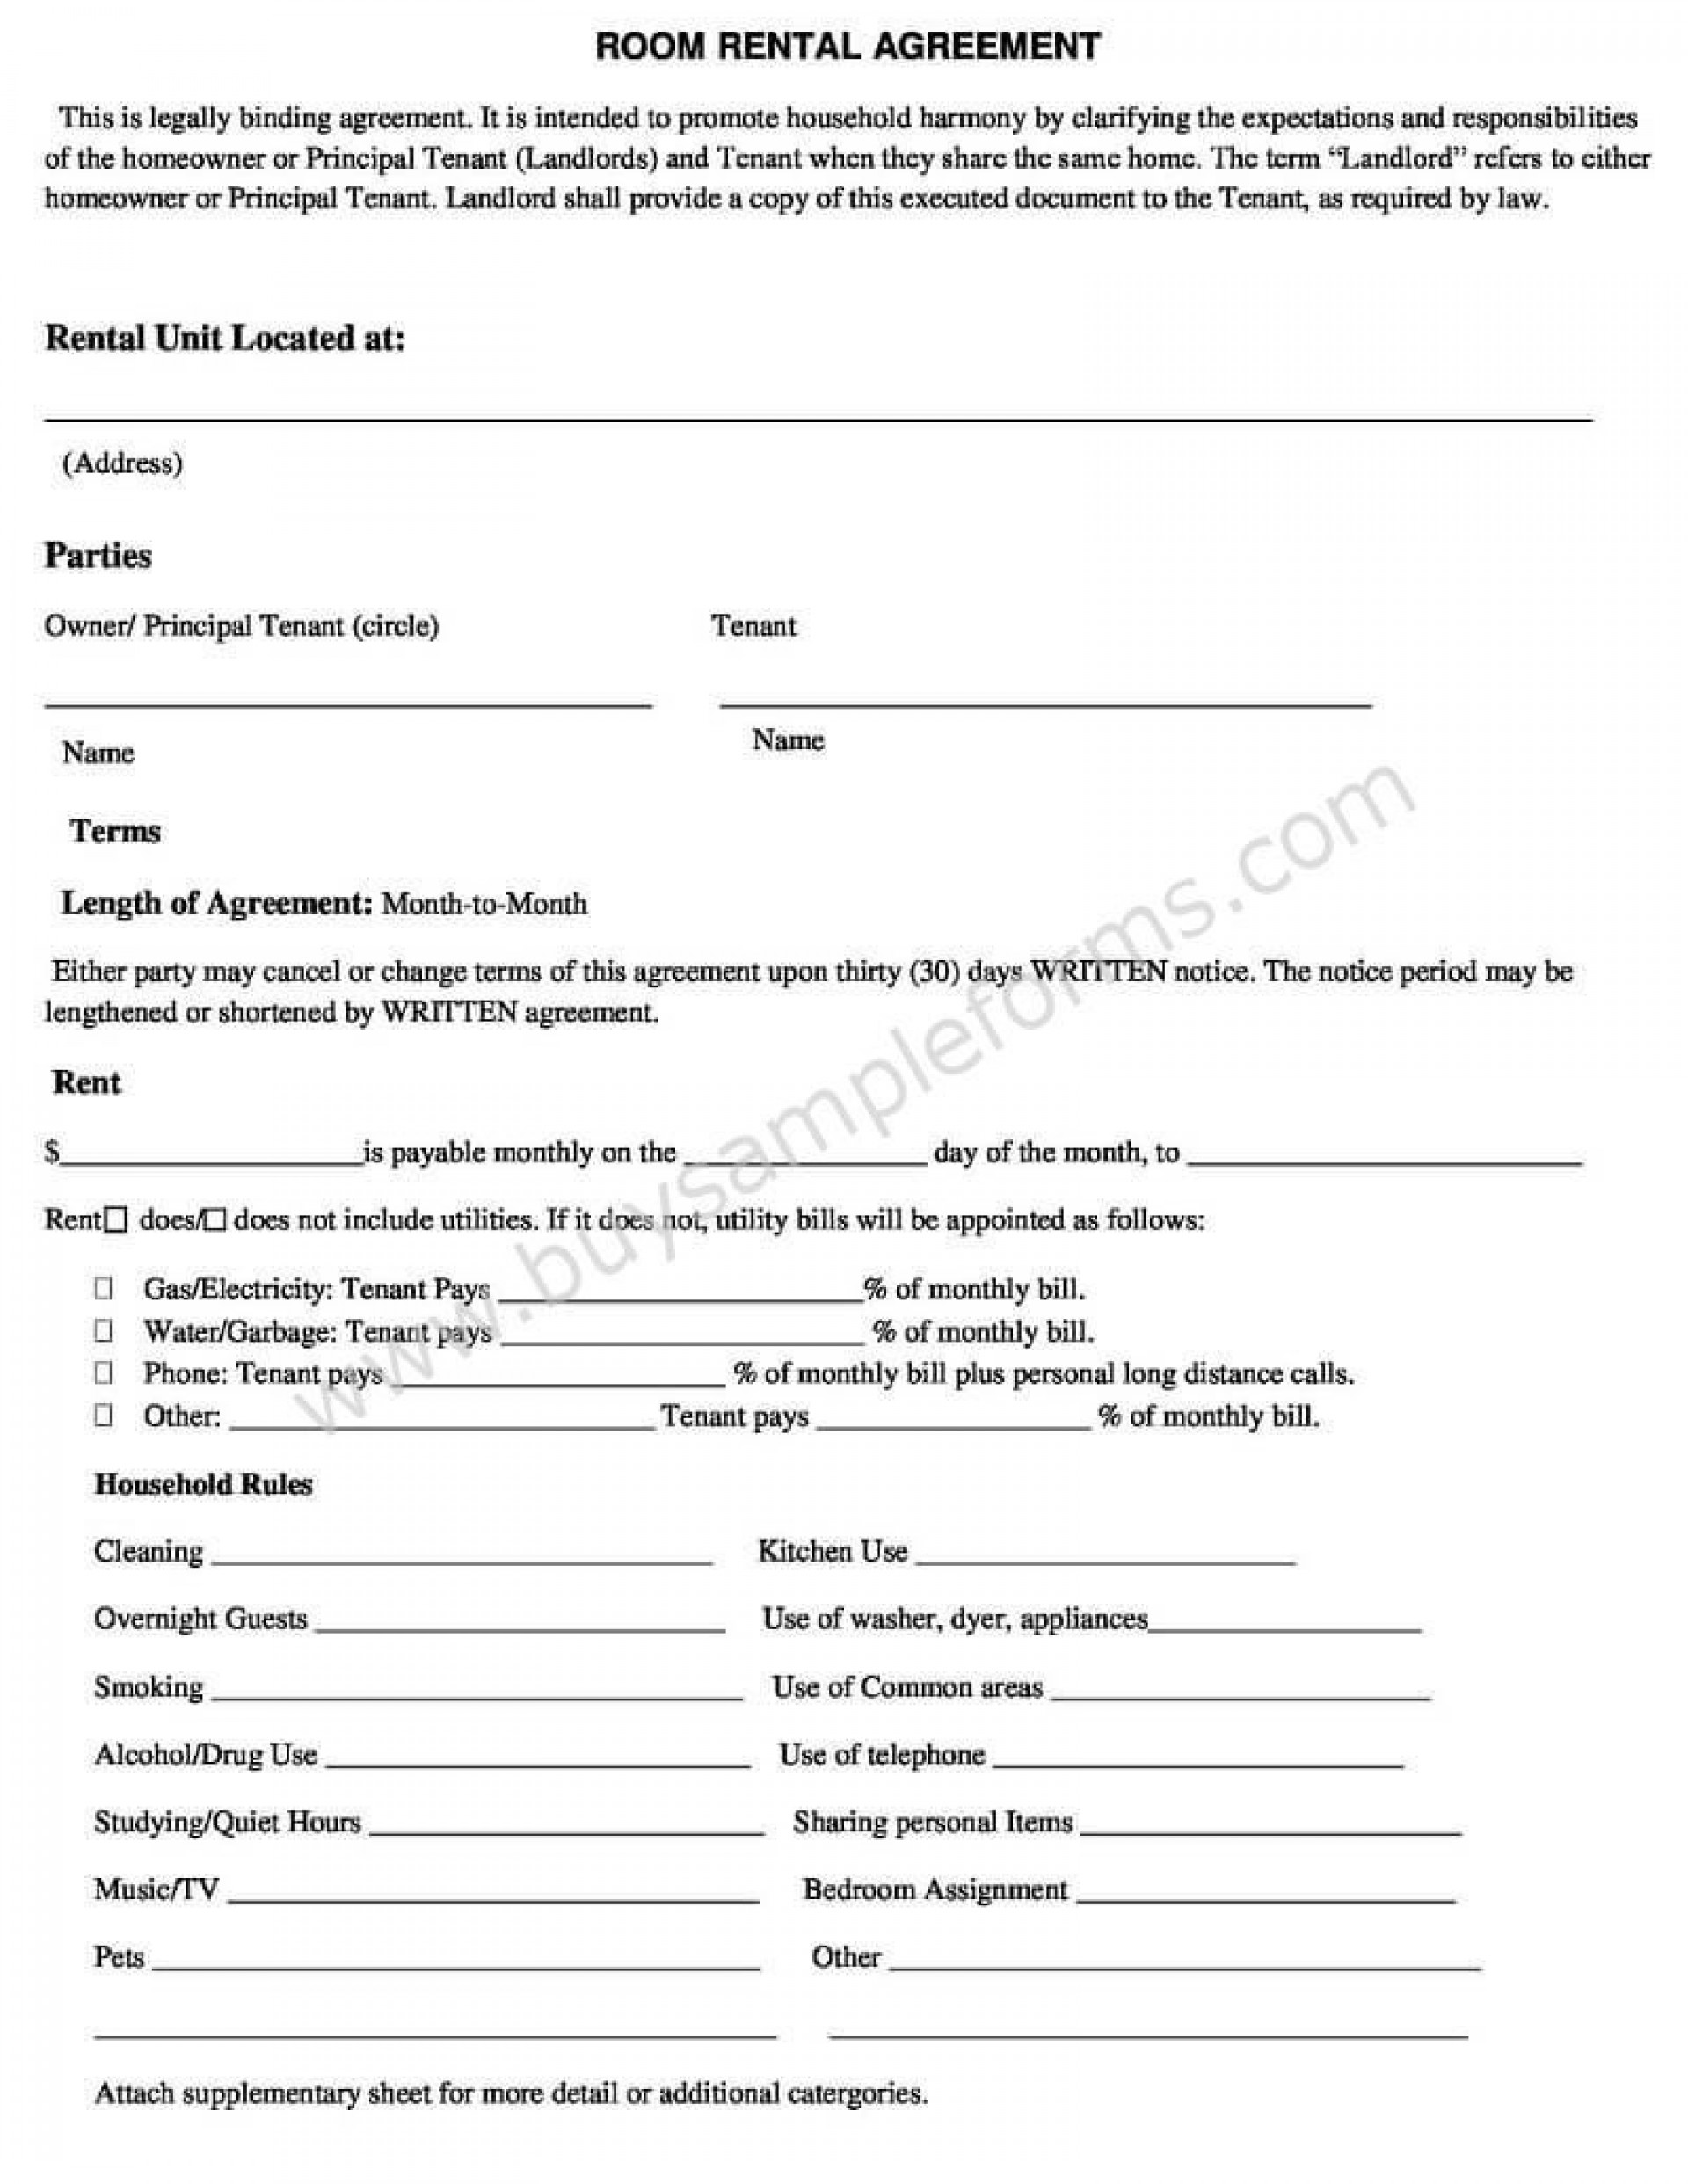 007 Outstanding Room Rental Agreement Simple Form Picture  Template Word Doc Rent Format In Free Uk1920